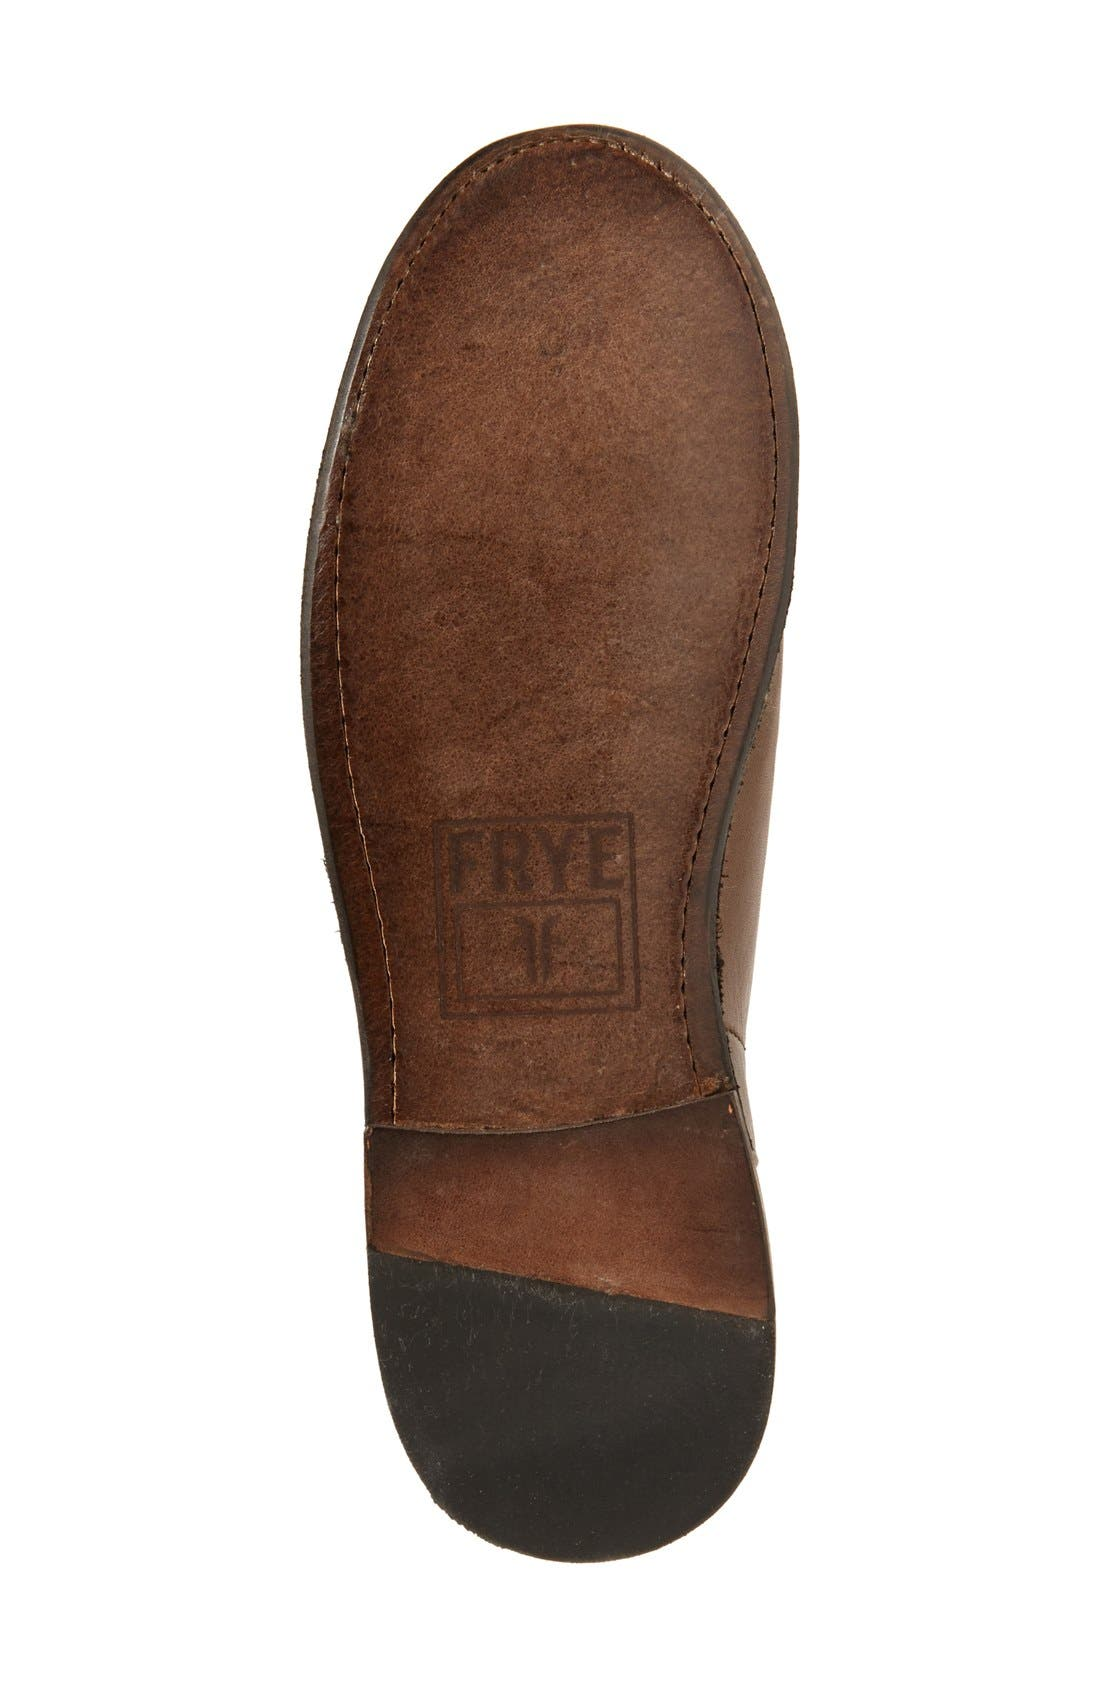 'Paige' Tall Riding Boot,                             Alternate thumbnail 4, color,                             020